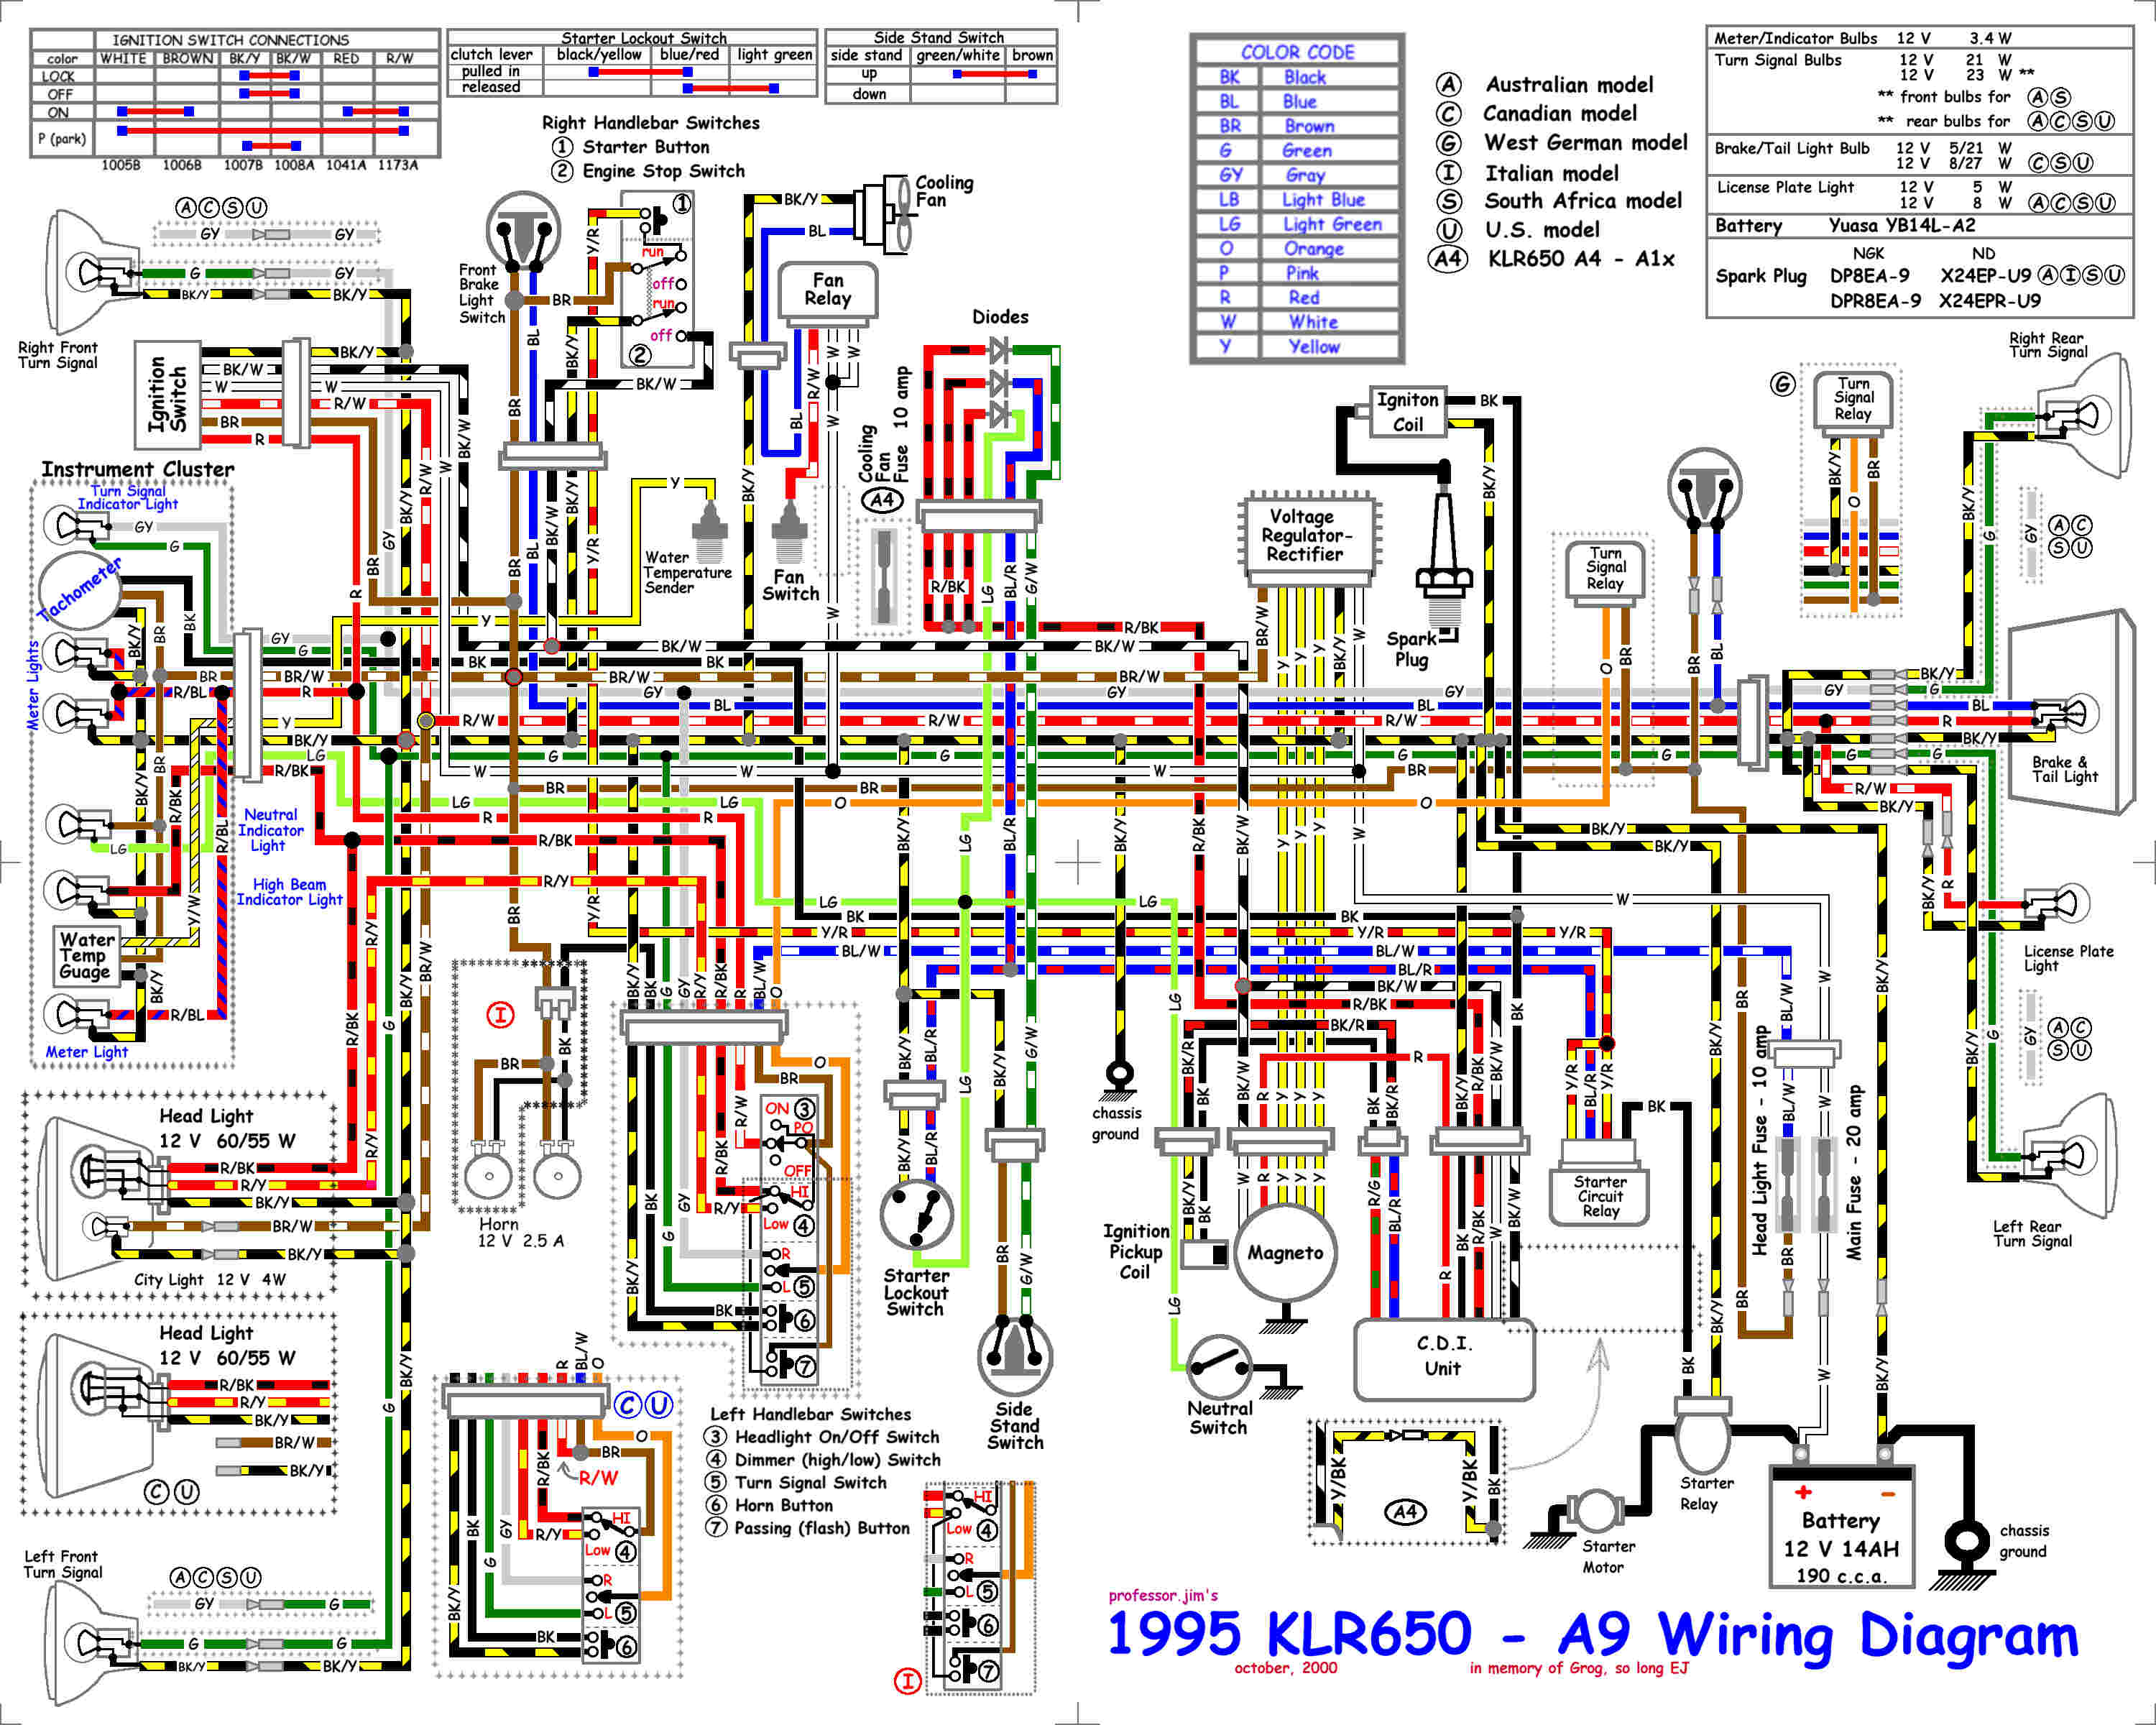 klr 250 wiring diagram klr image wiring diagram klr 650 wiring diagram images on klr 250 wiring diagram